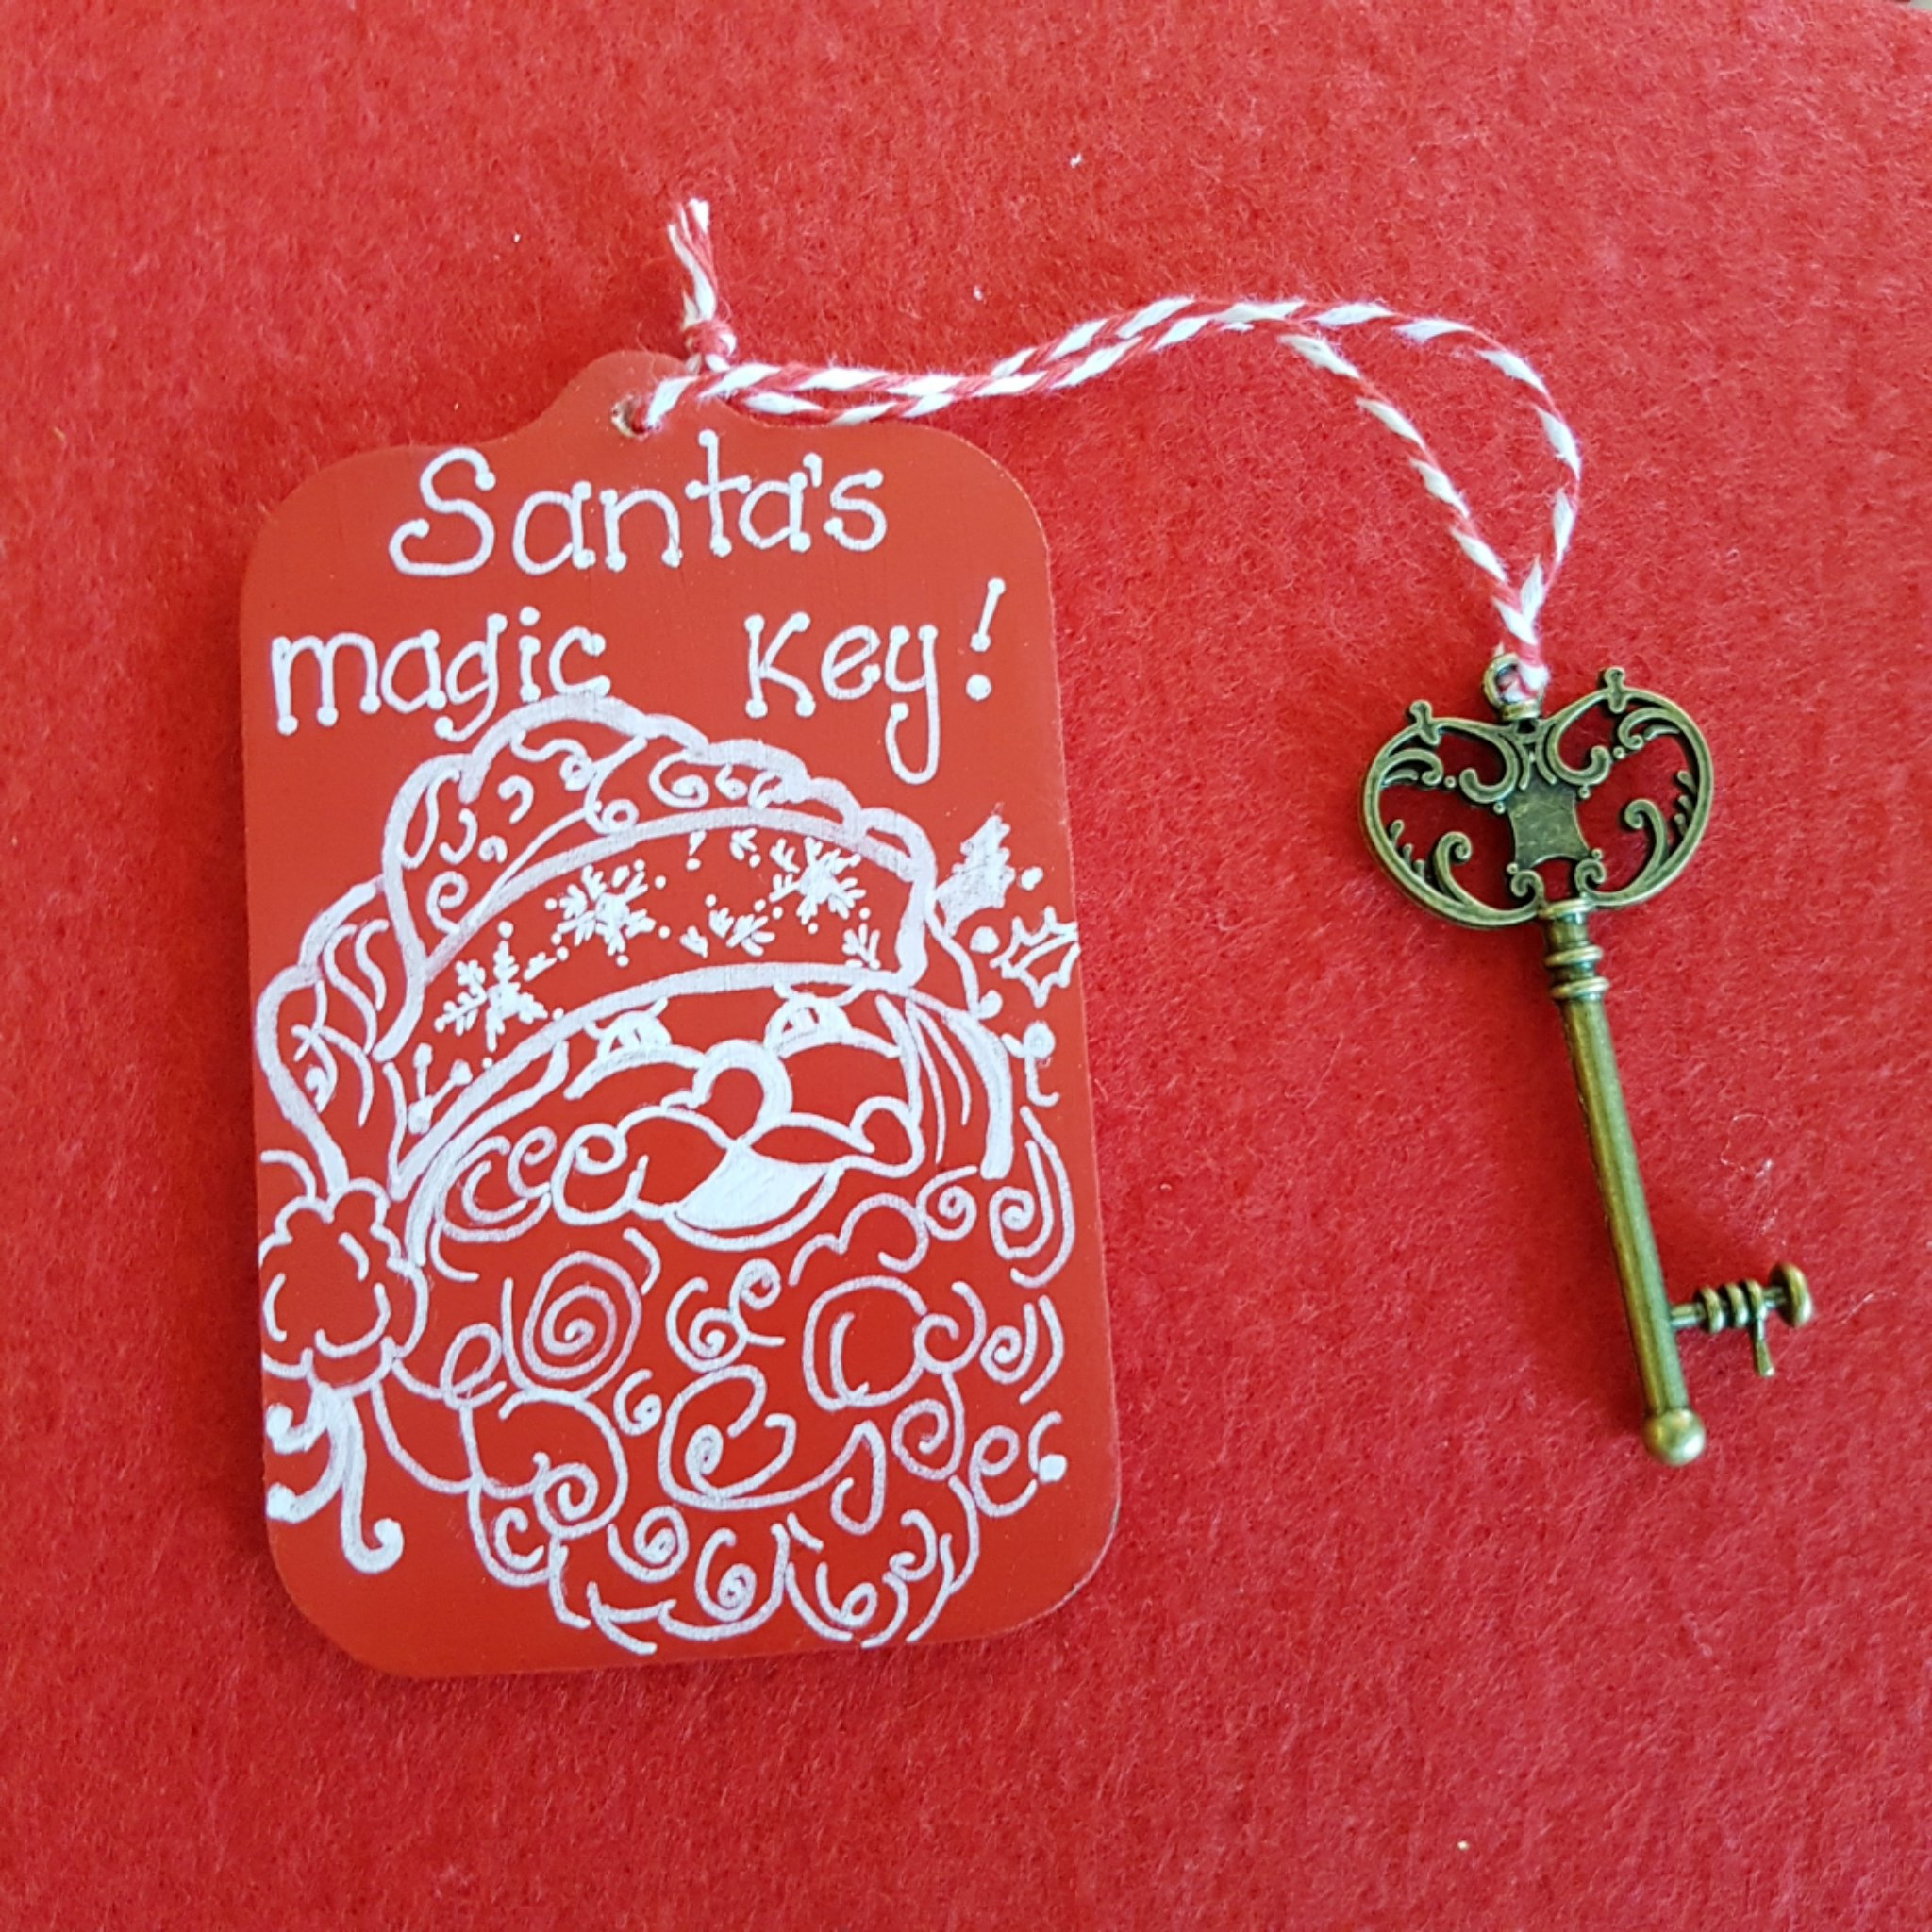 Santas magic key 00286